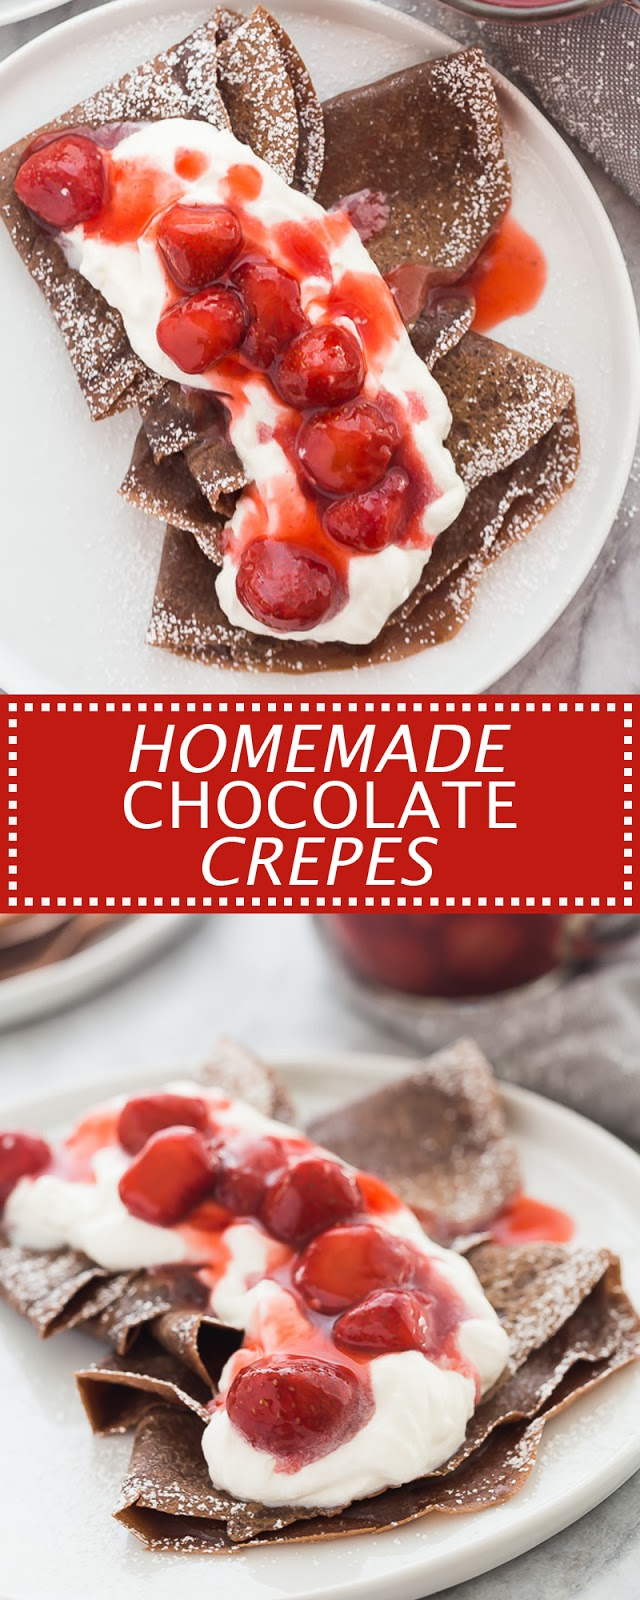 HOMEMADE CHOCOLATE CREPES